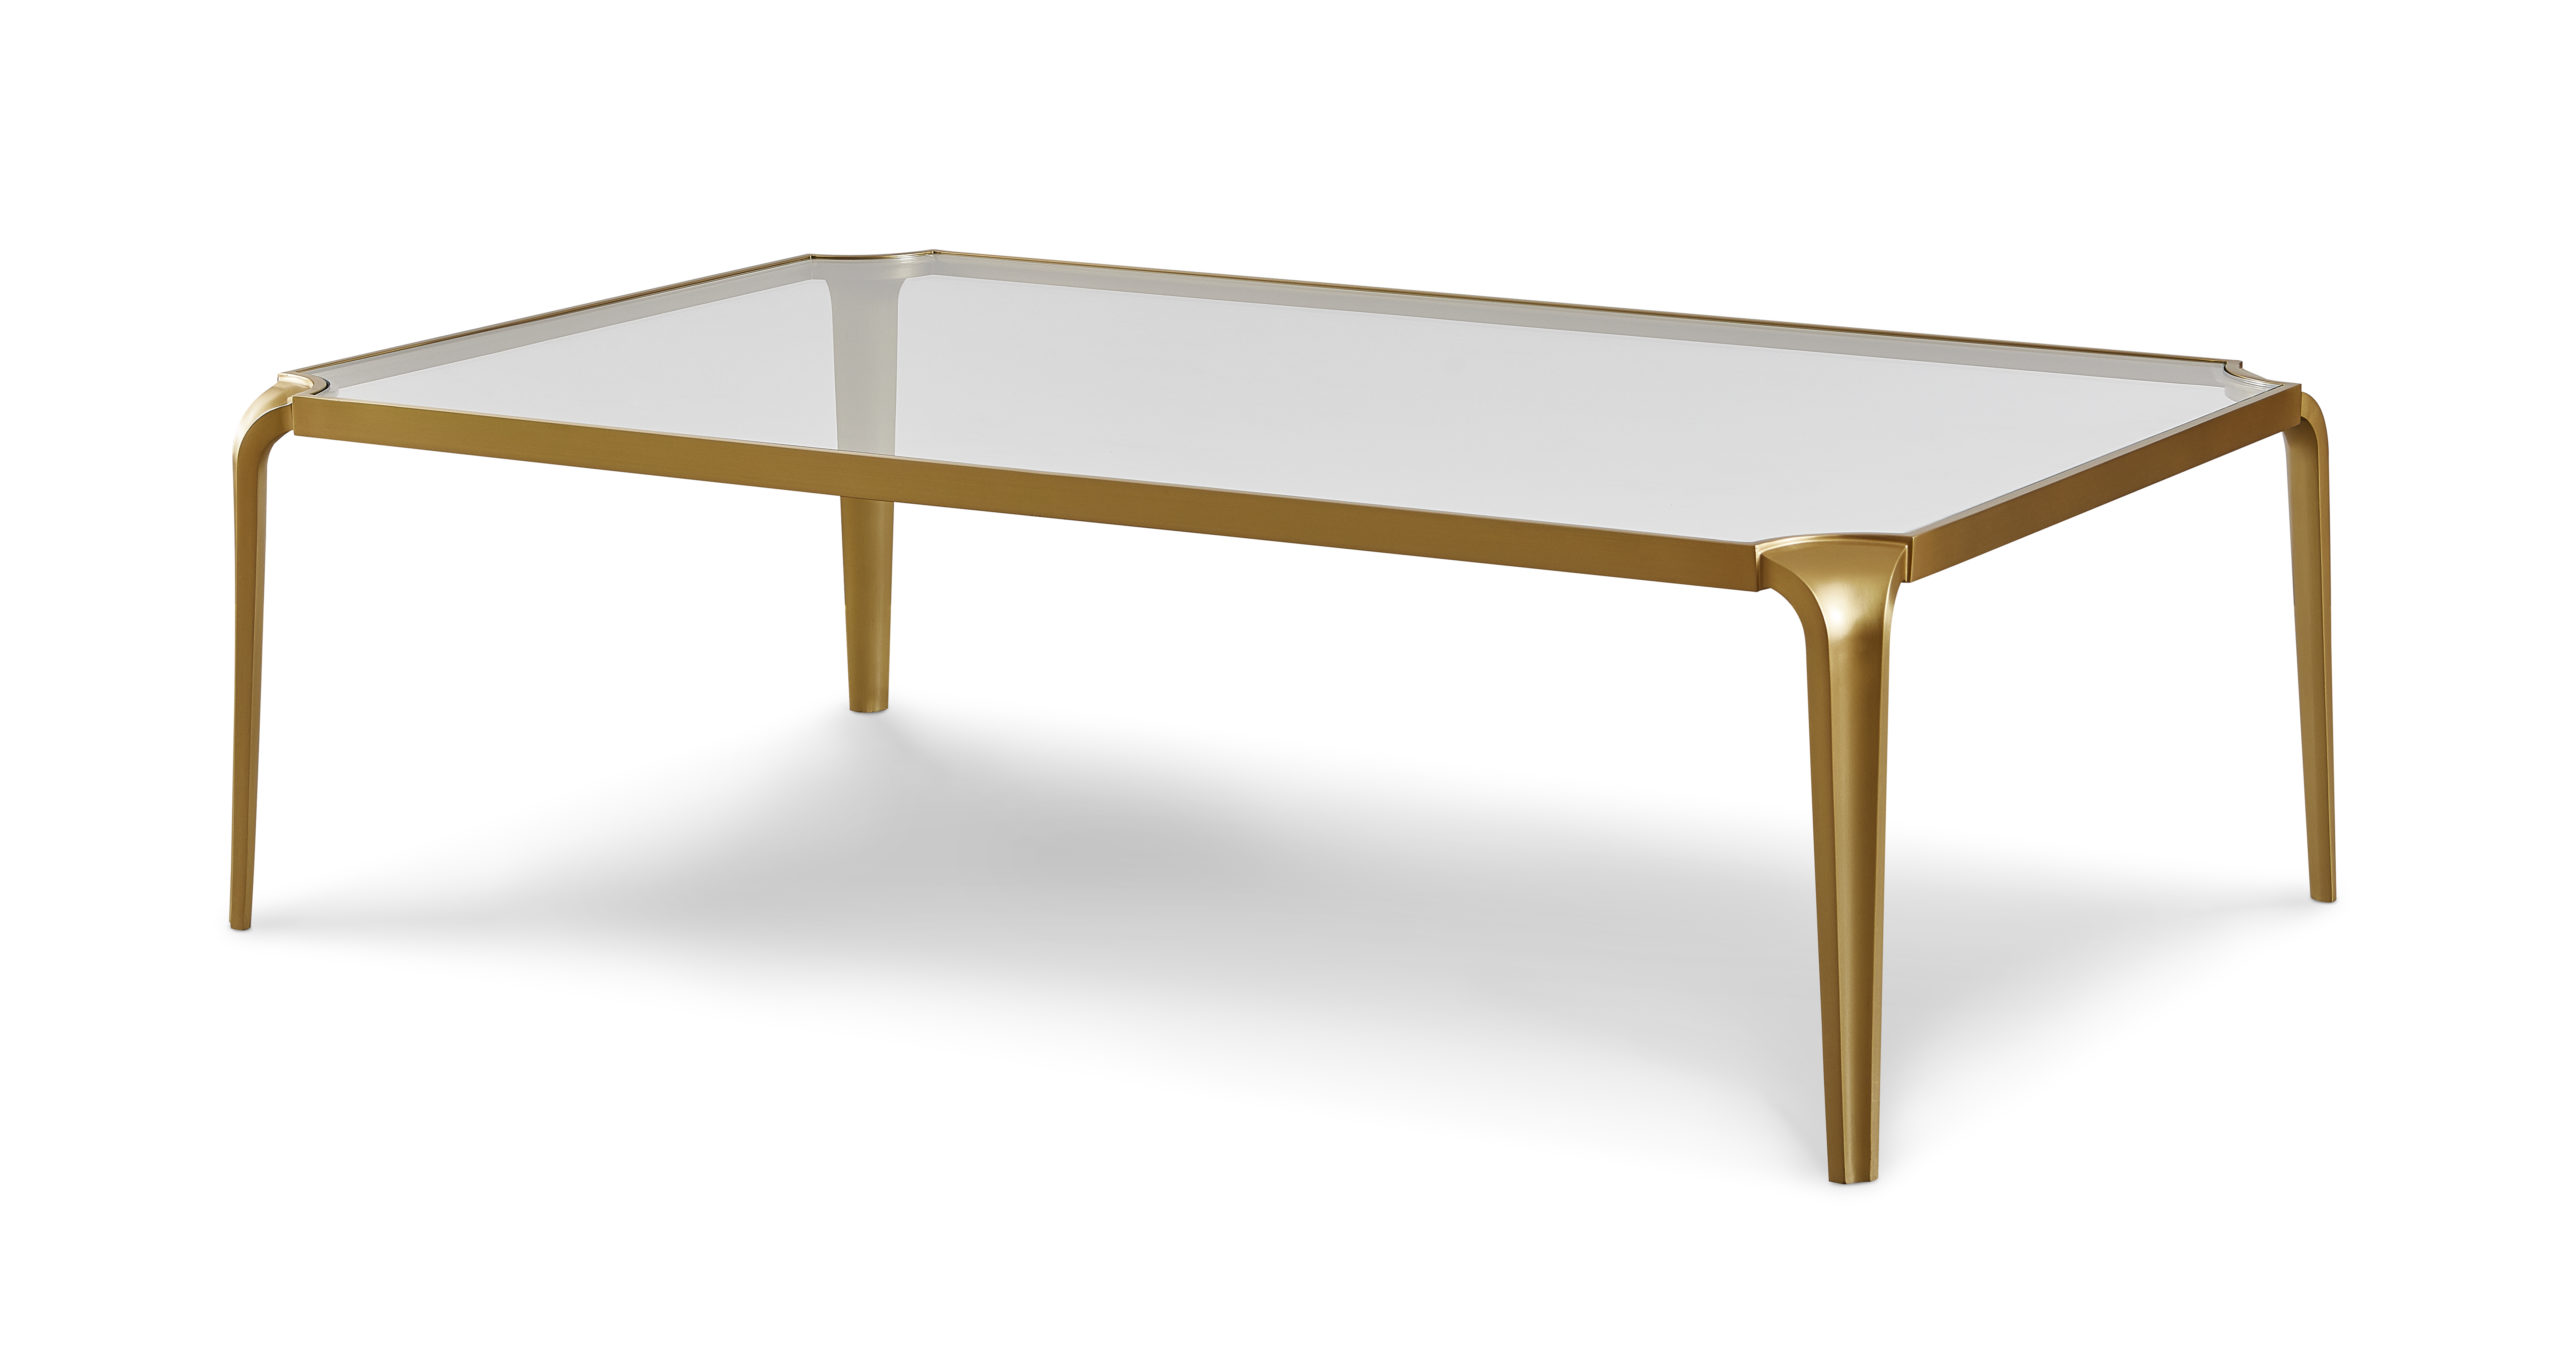 Baker_products_WNWN_lotus_cocktail_table_BAA3052_FRONT_3QRT-scaled-2